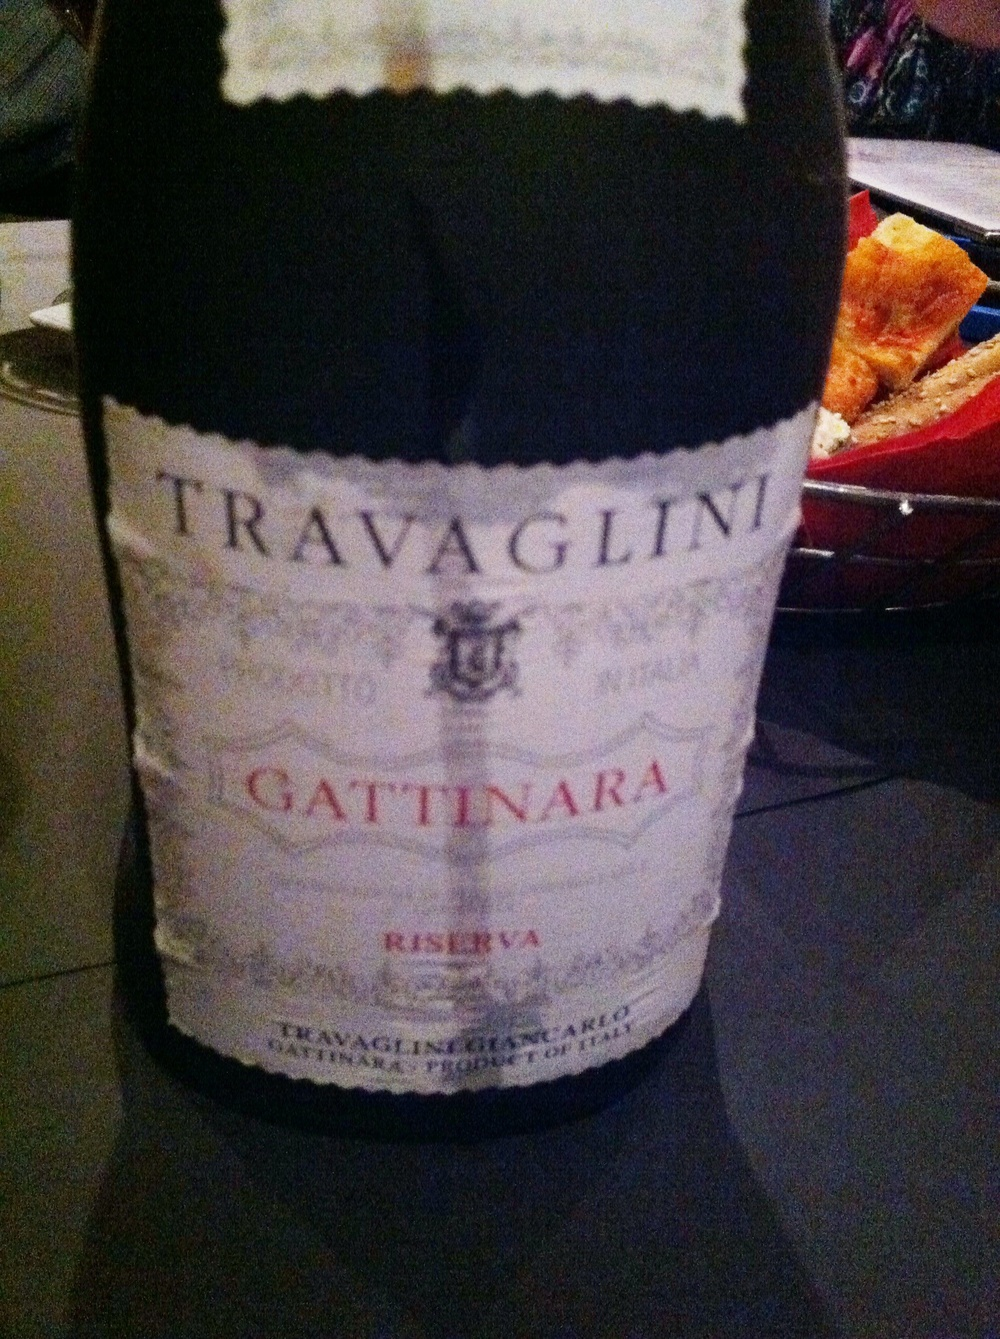 Swoony-worthy Nebbiolo.  Photo by Shana Sokol, Shana Speaks Wine.